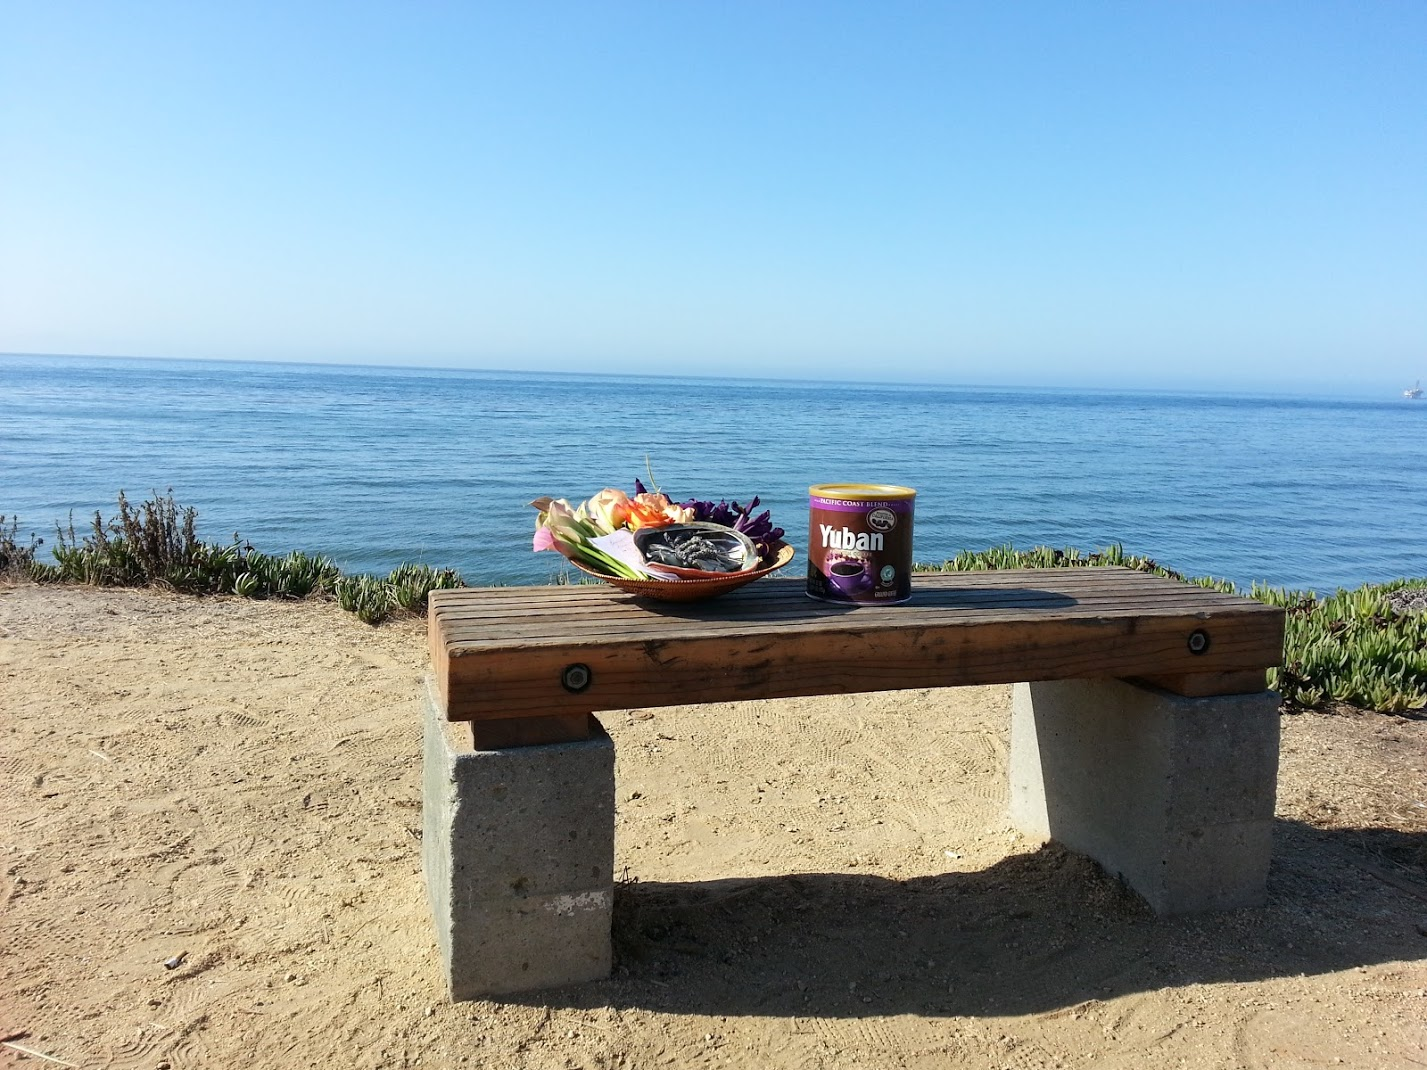 Mama's Favorite Place to Sit and Write - Her ashes are in the coffee can ready to release into our Mama Ocean